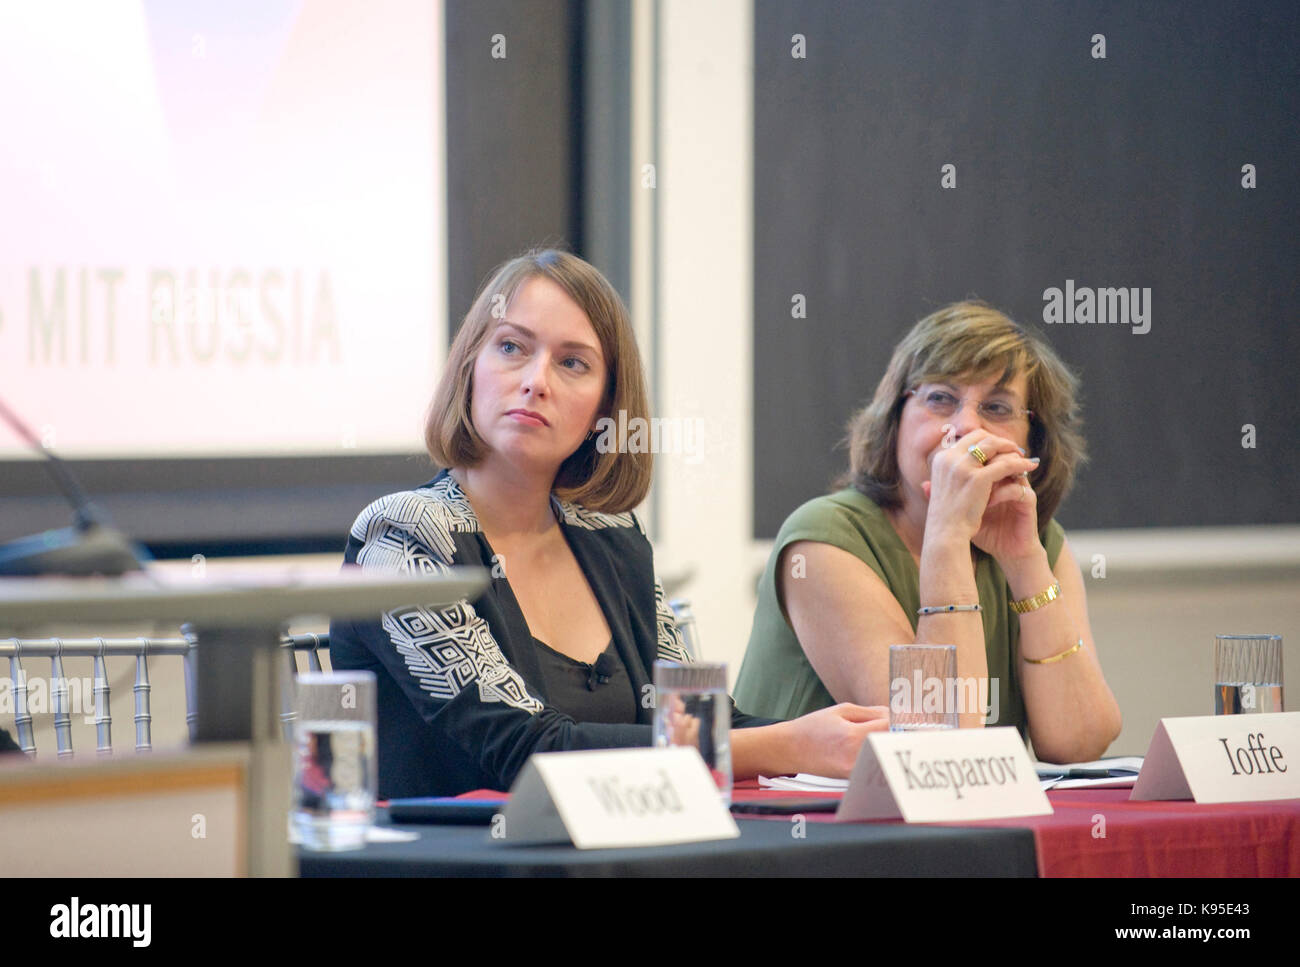 Julia Ioffe and Carol Saivetz look on as Russian dissident Garry Kasparov speaks from the Starr Forum podium at - Stock Image